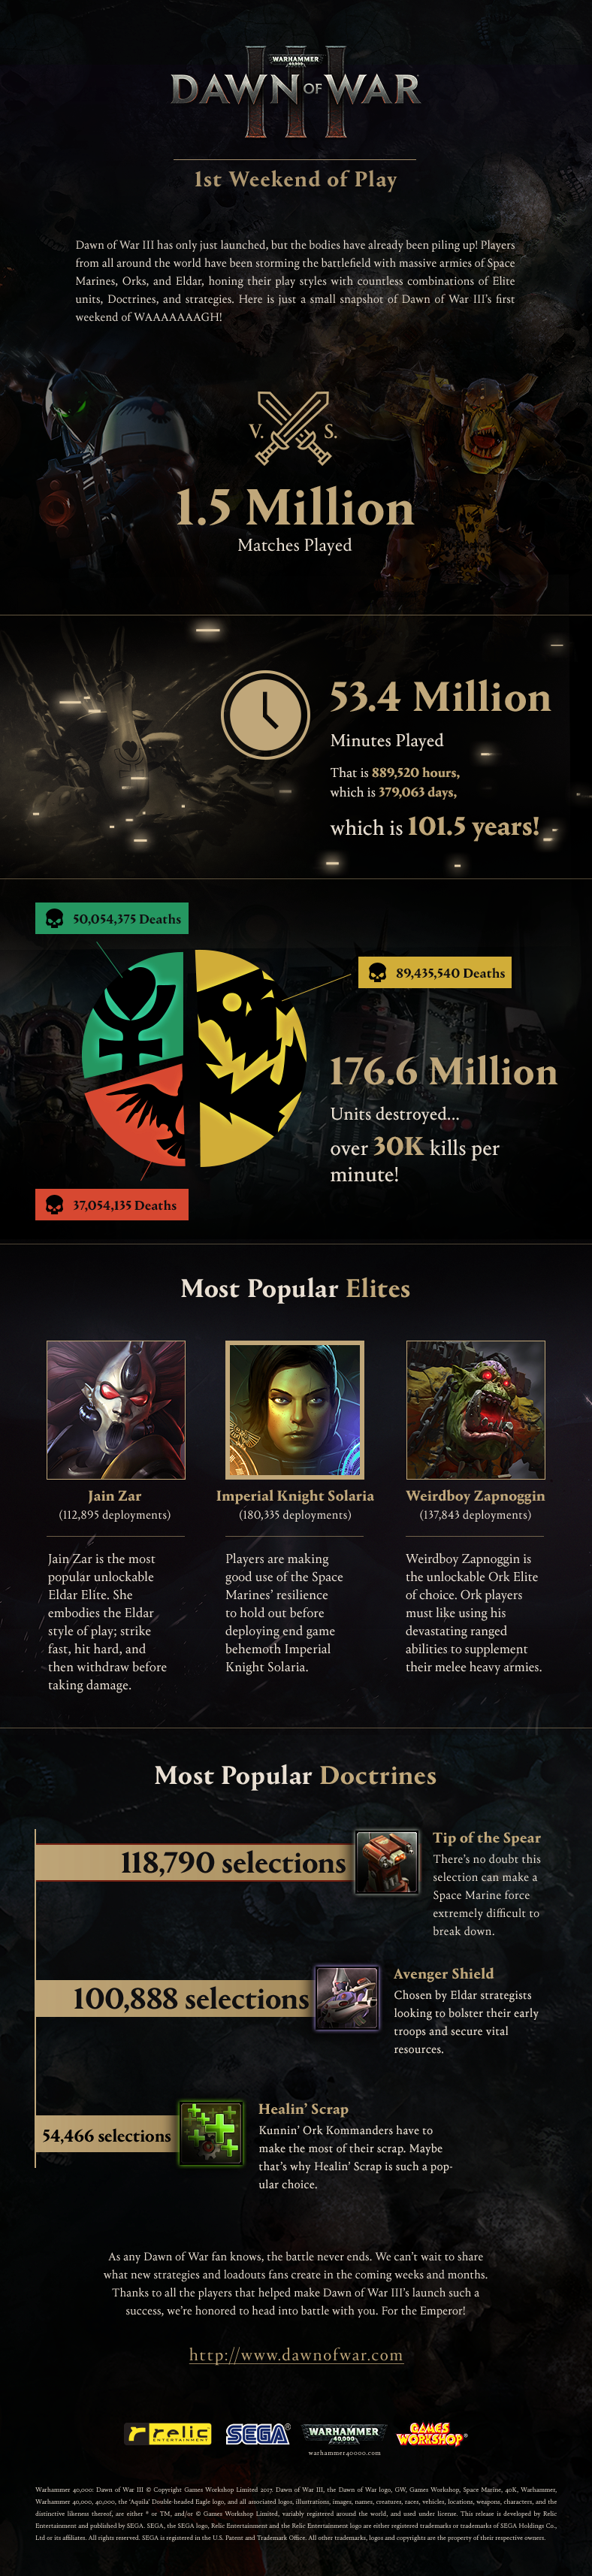 Dow3_Infographic_1stWeekend